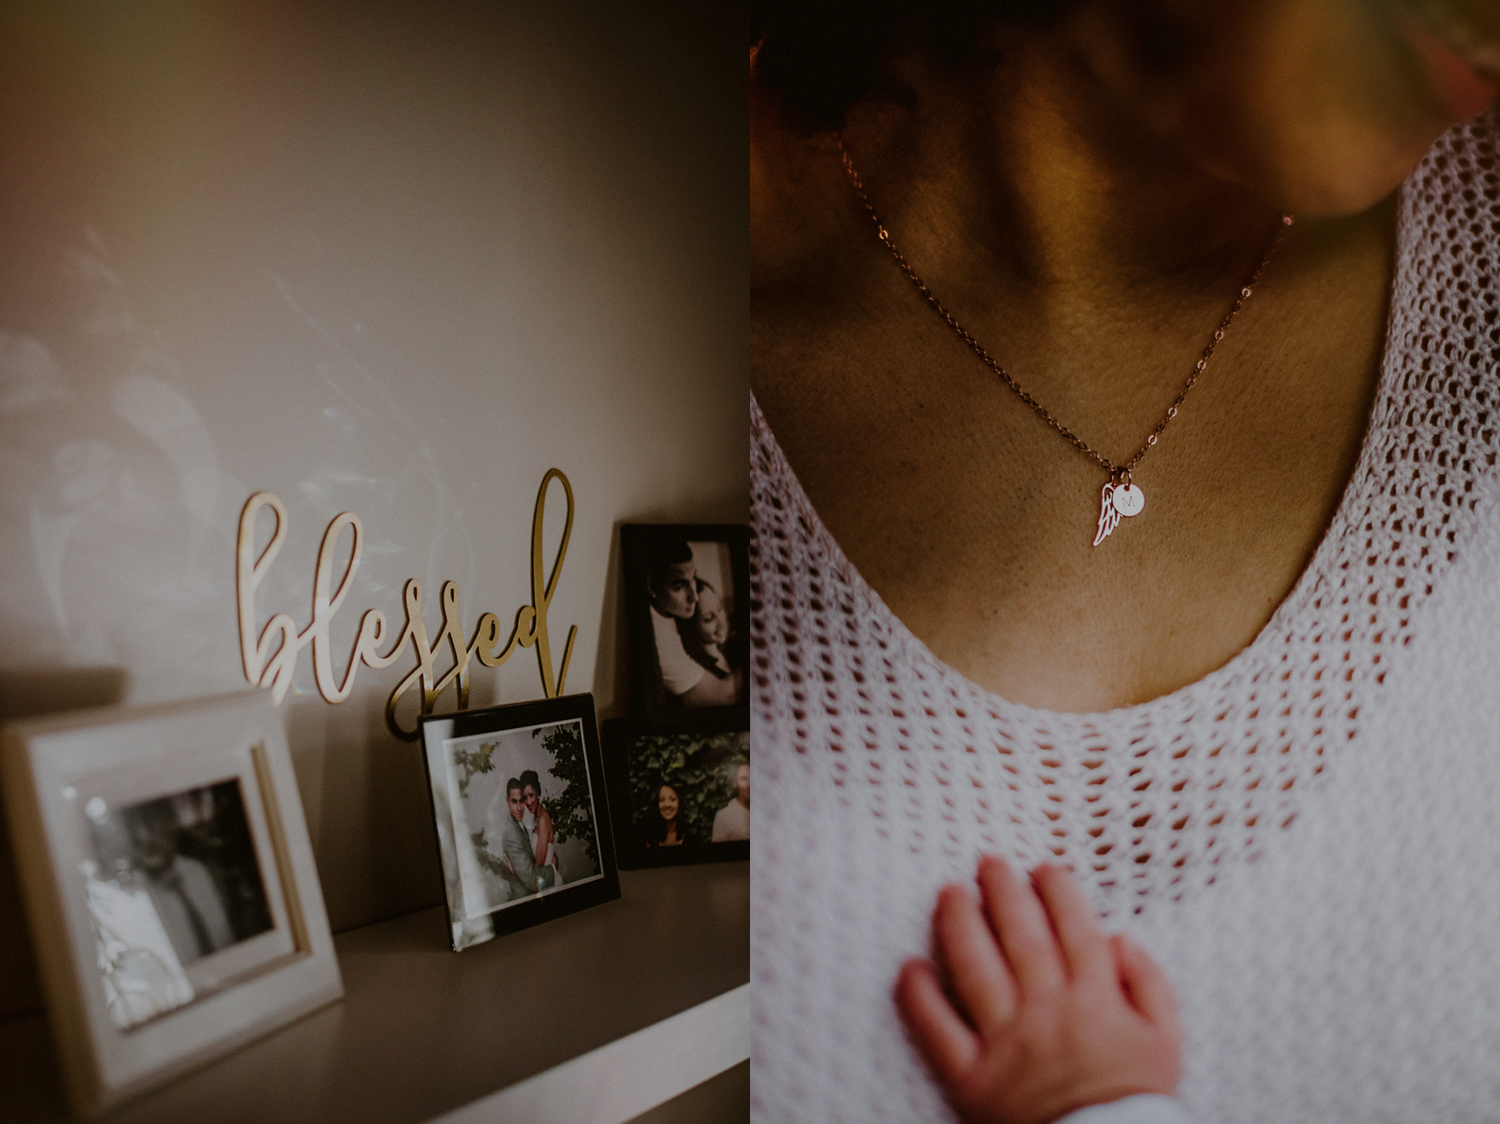 baby's hand on mother's chest juxtaposed next to blessed sign on wall